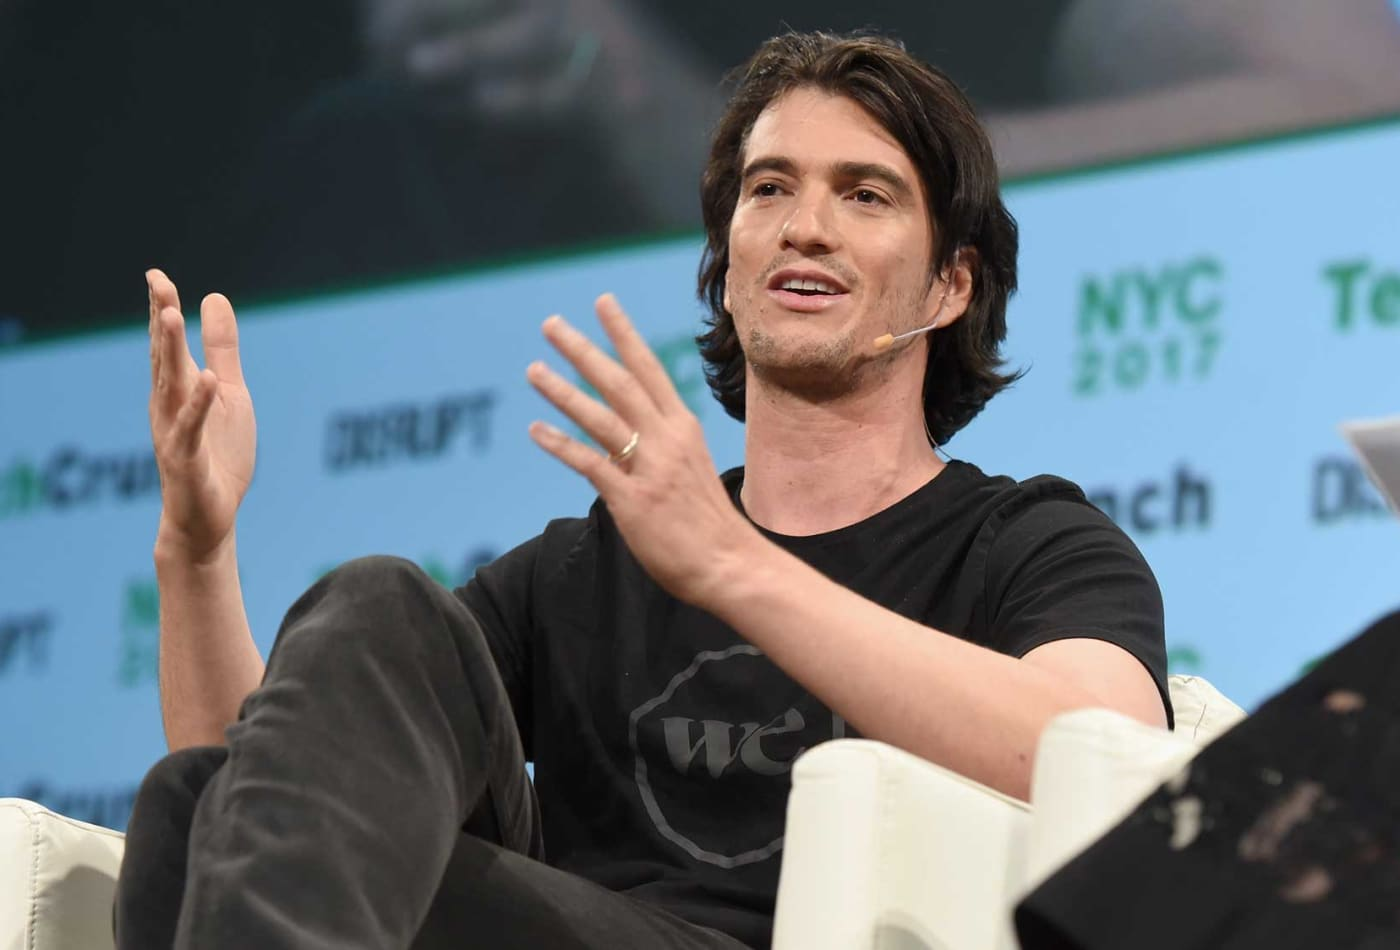 WeWork CEO returns $5.9 million the company paid him for 'We' trademark